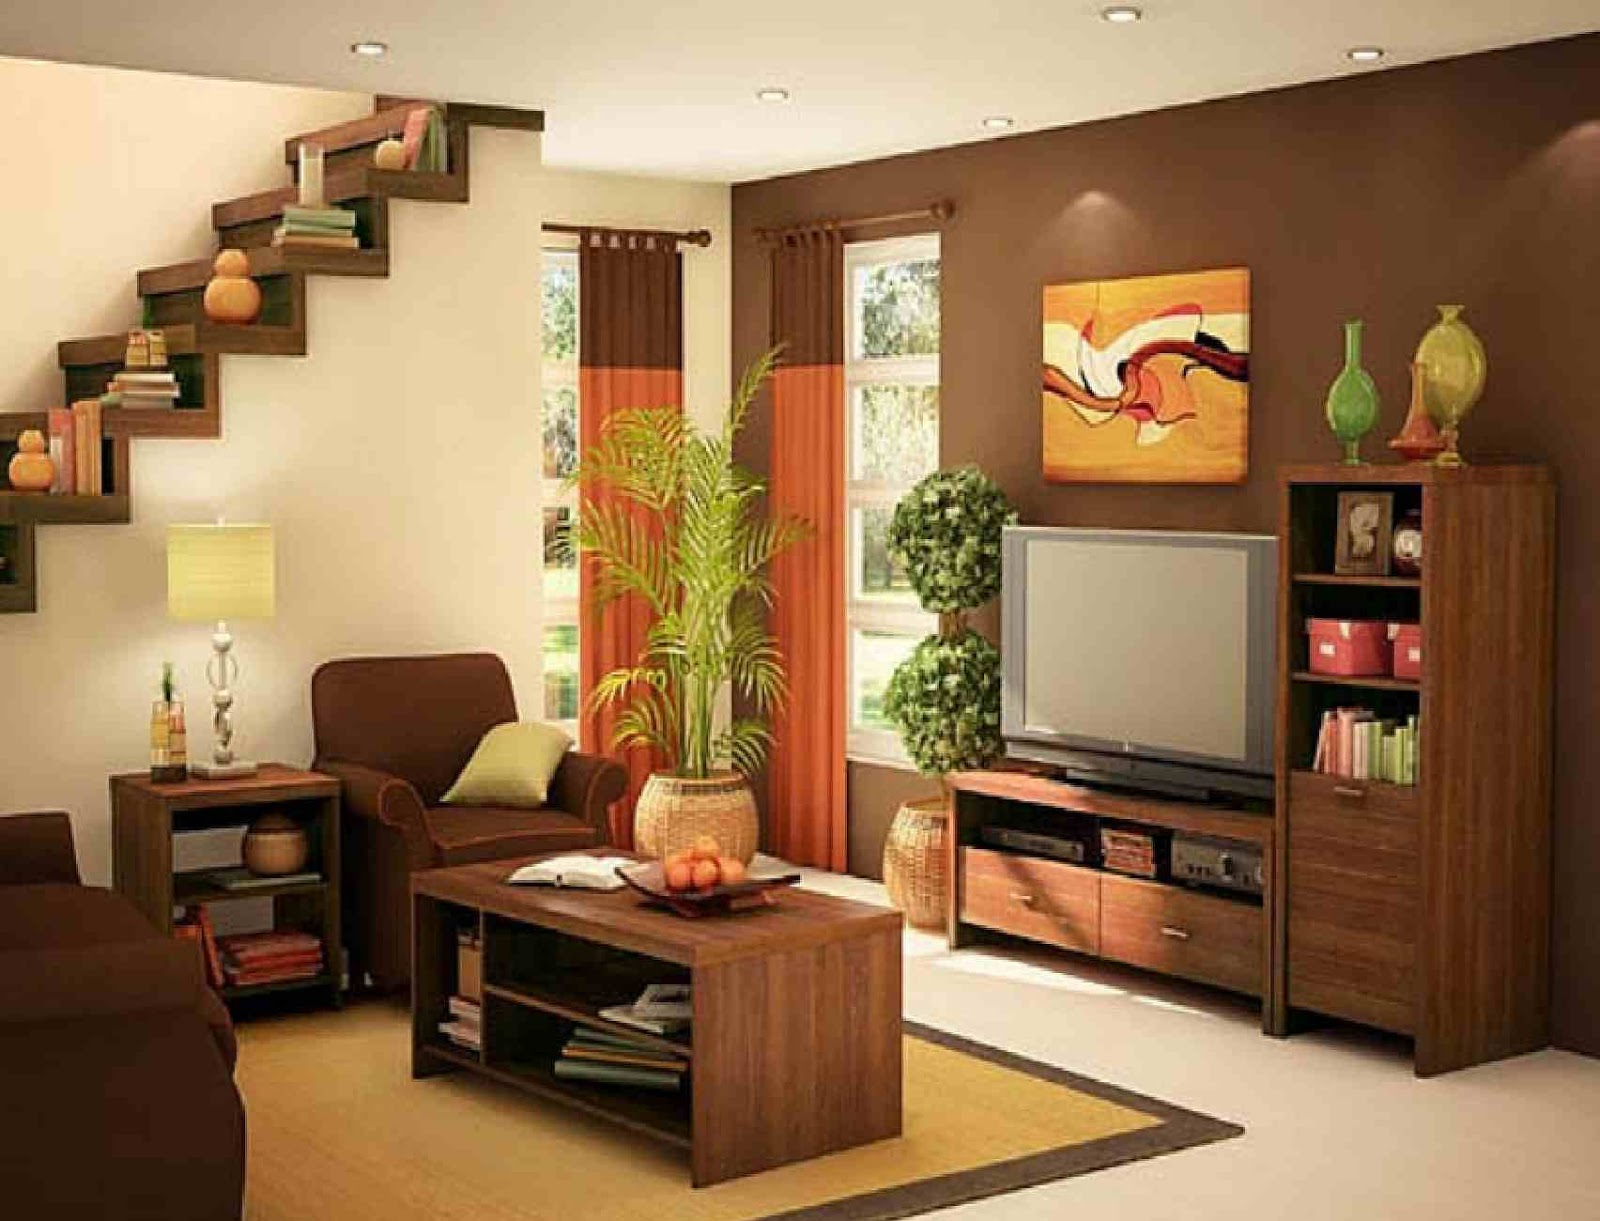 Home interior designs simple living room designs for Living room interior simple